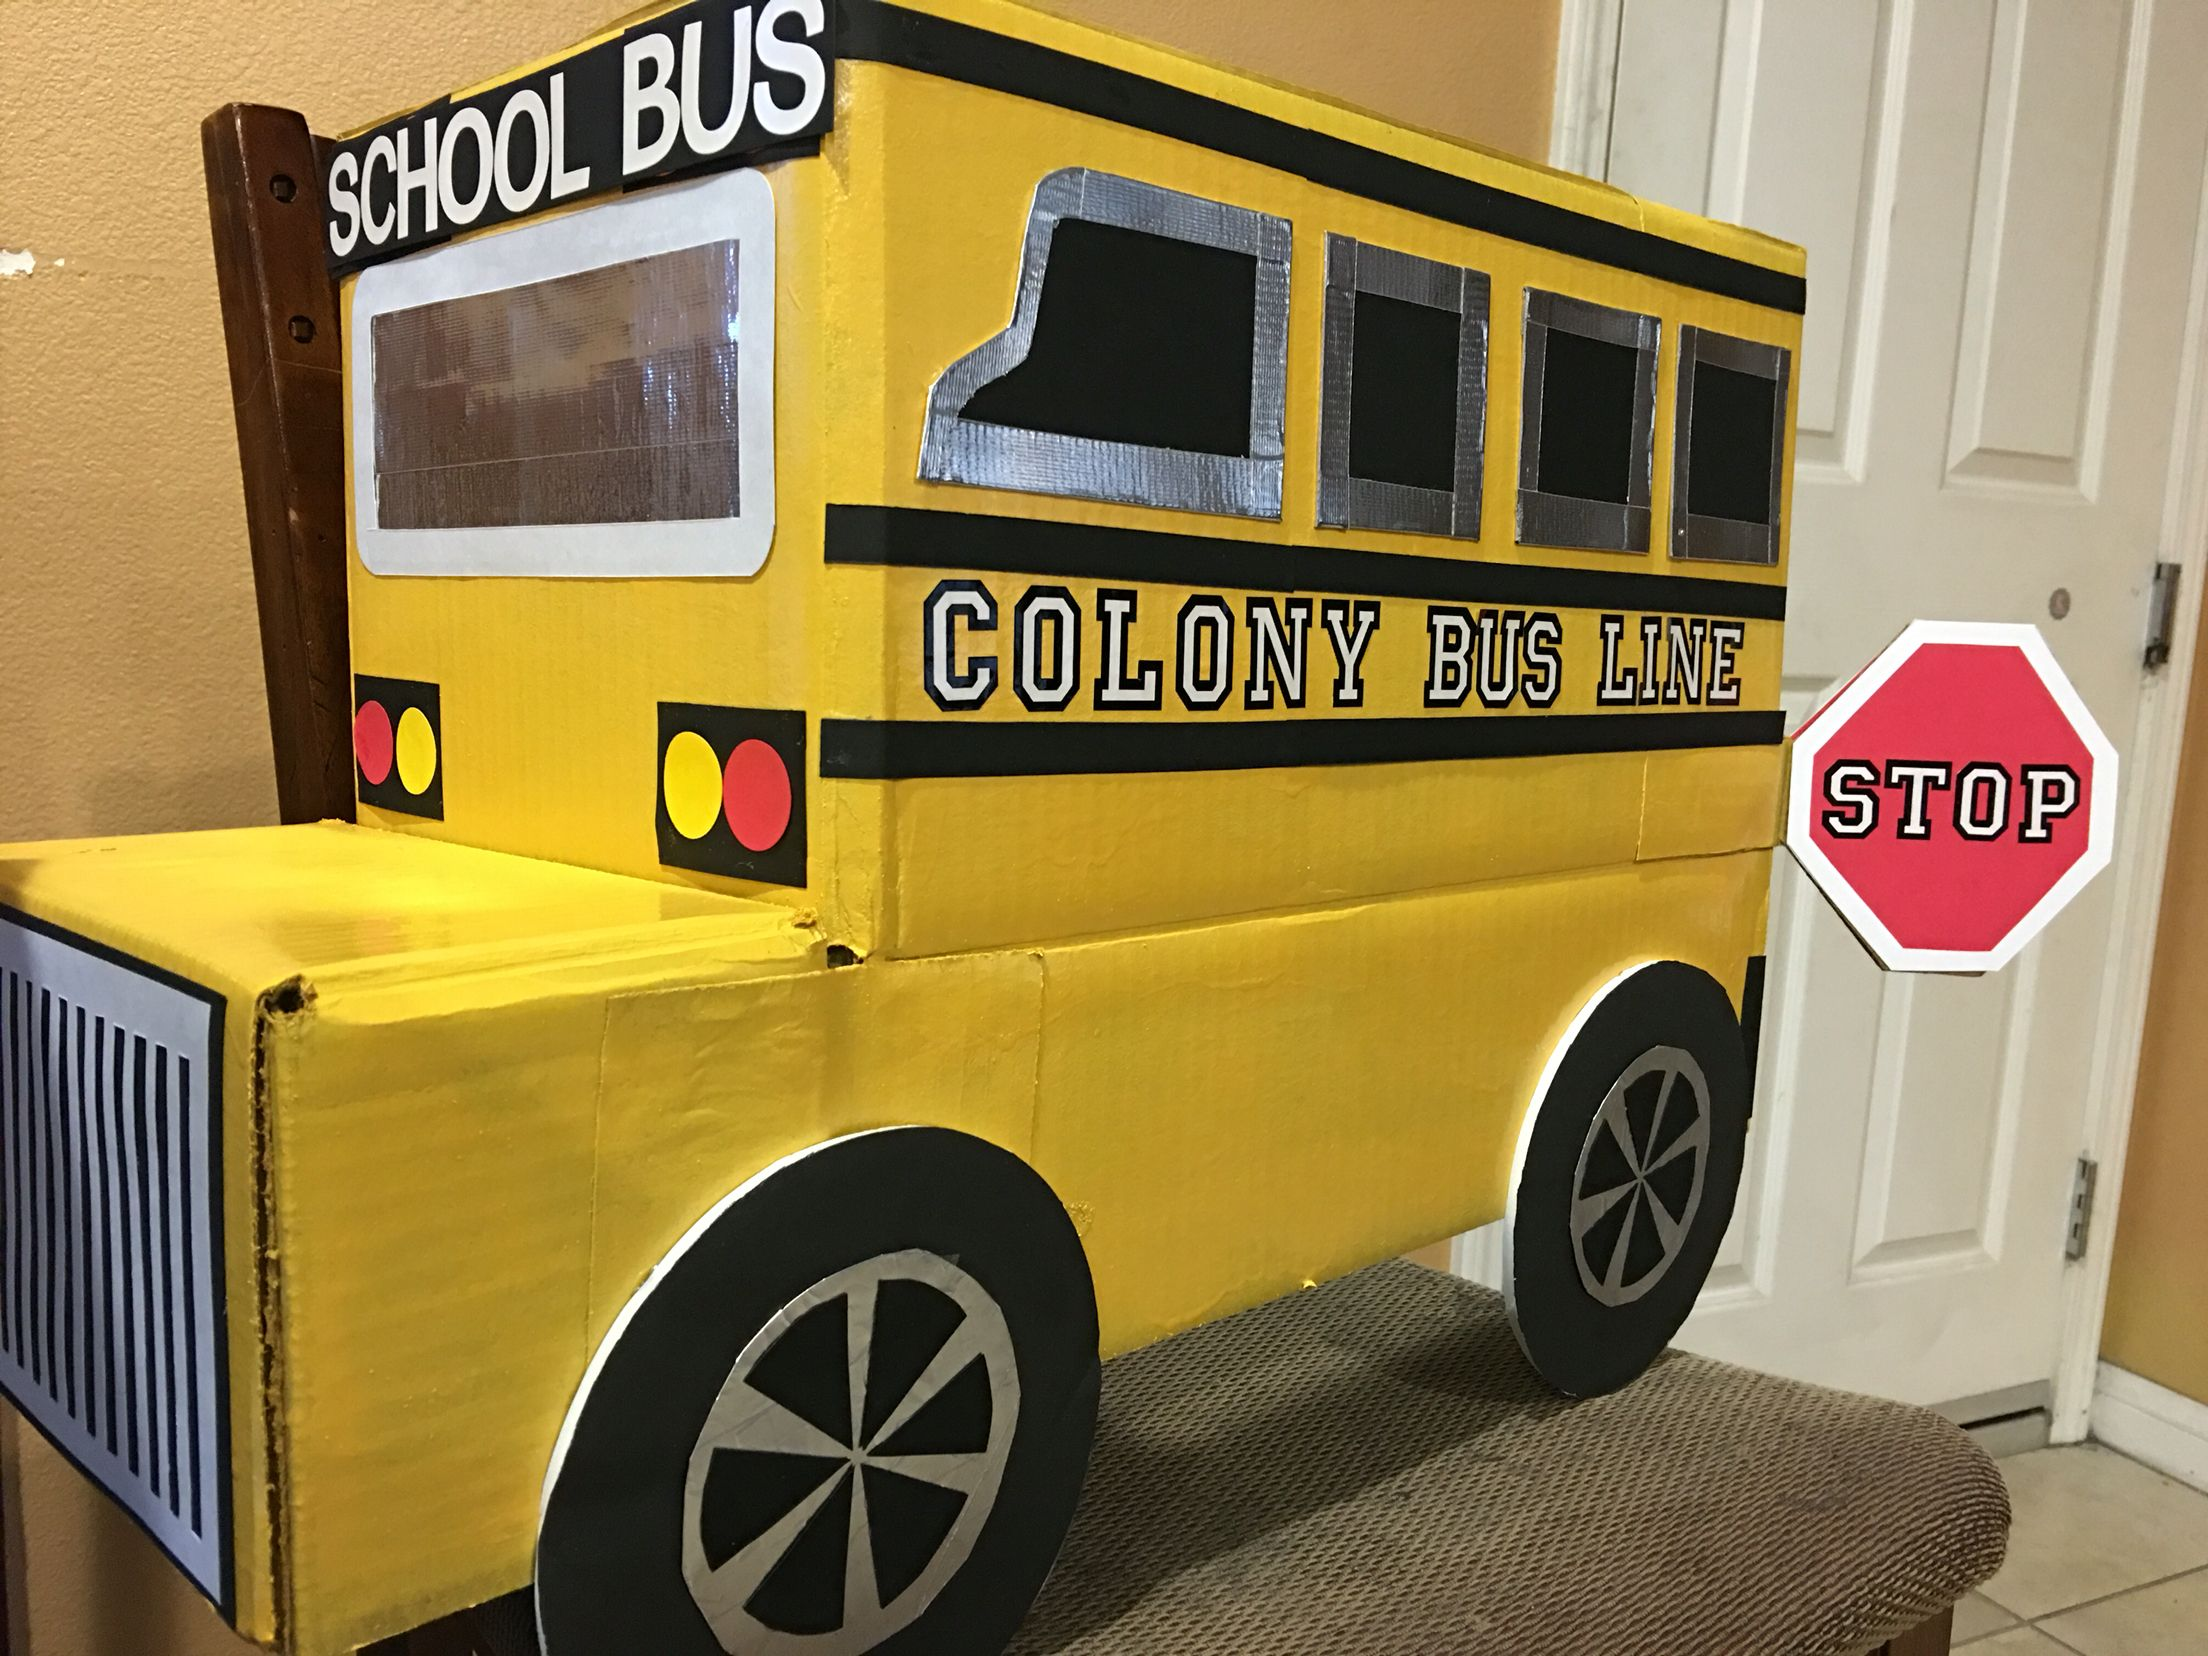 Cardboard box SCHOOL BUS for Kindy 500 (2016) | goodwill work stuff ...